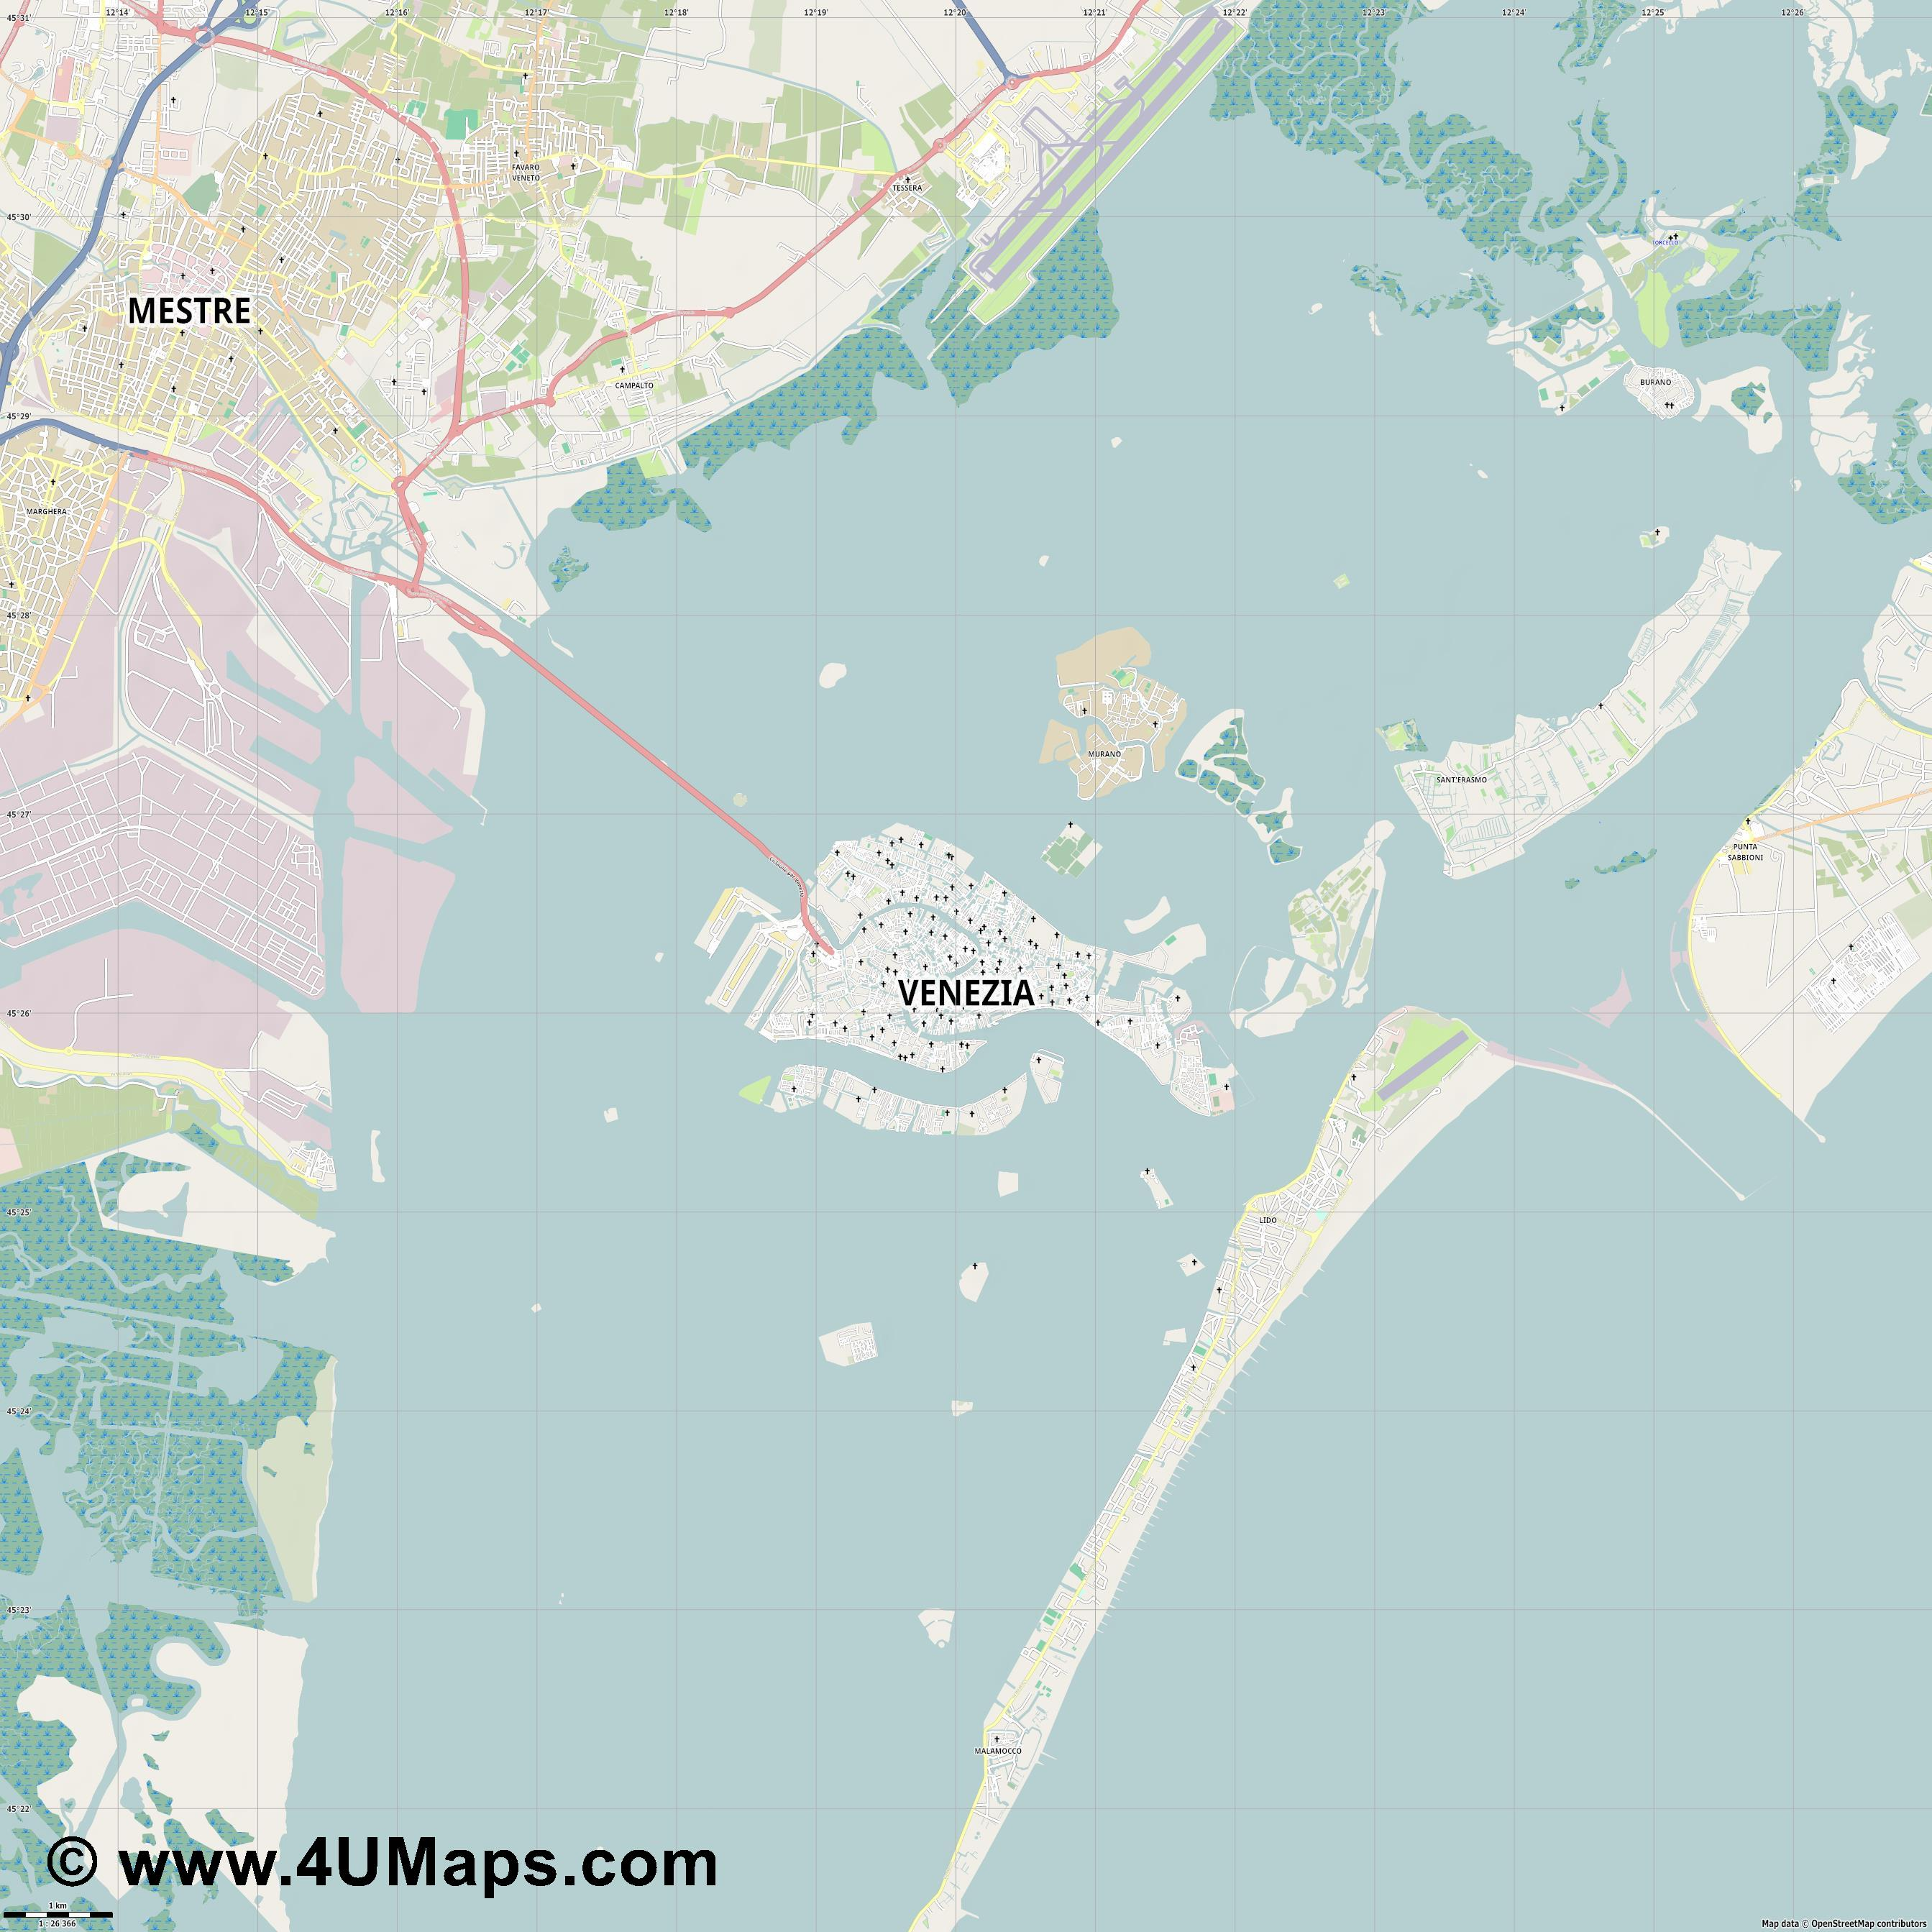 Venezia Venice Venecia Venise Venedig  jpg high detail, large area preview vector city map